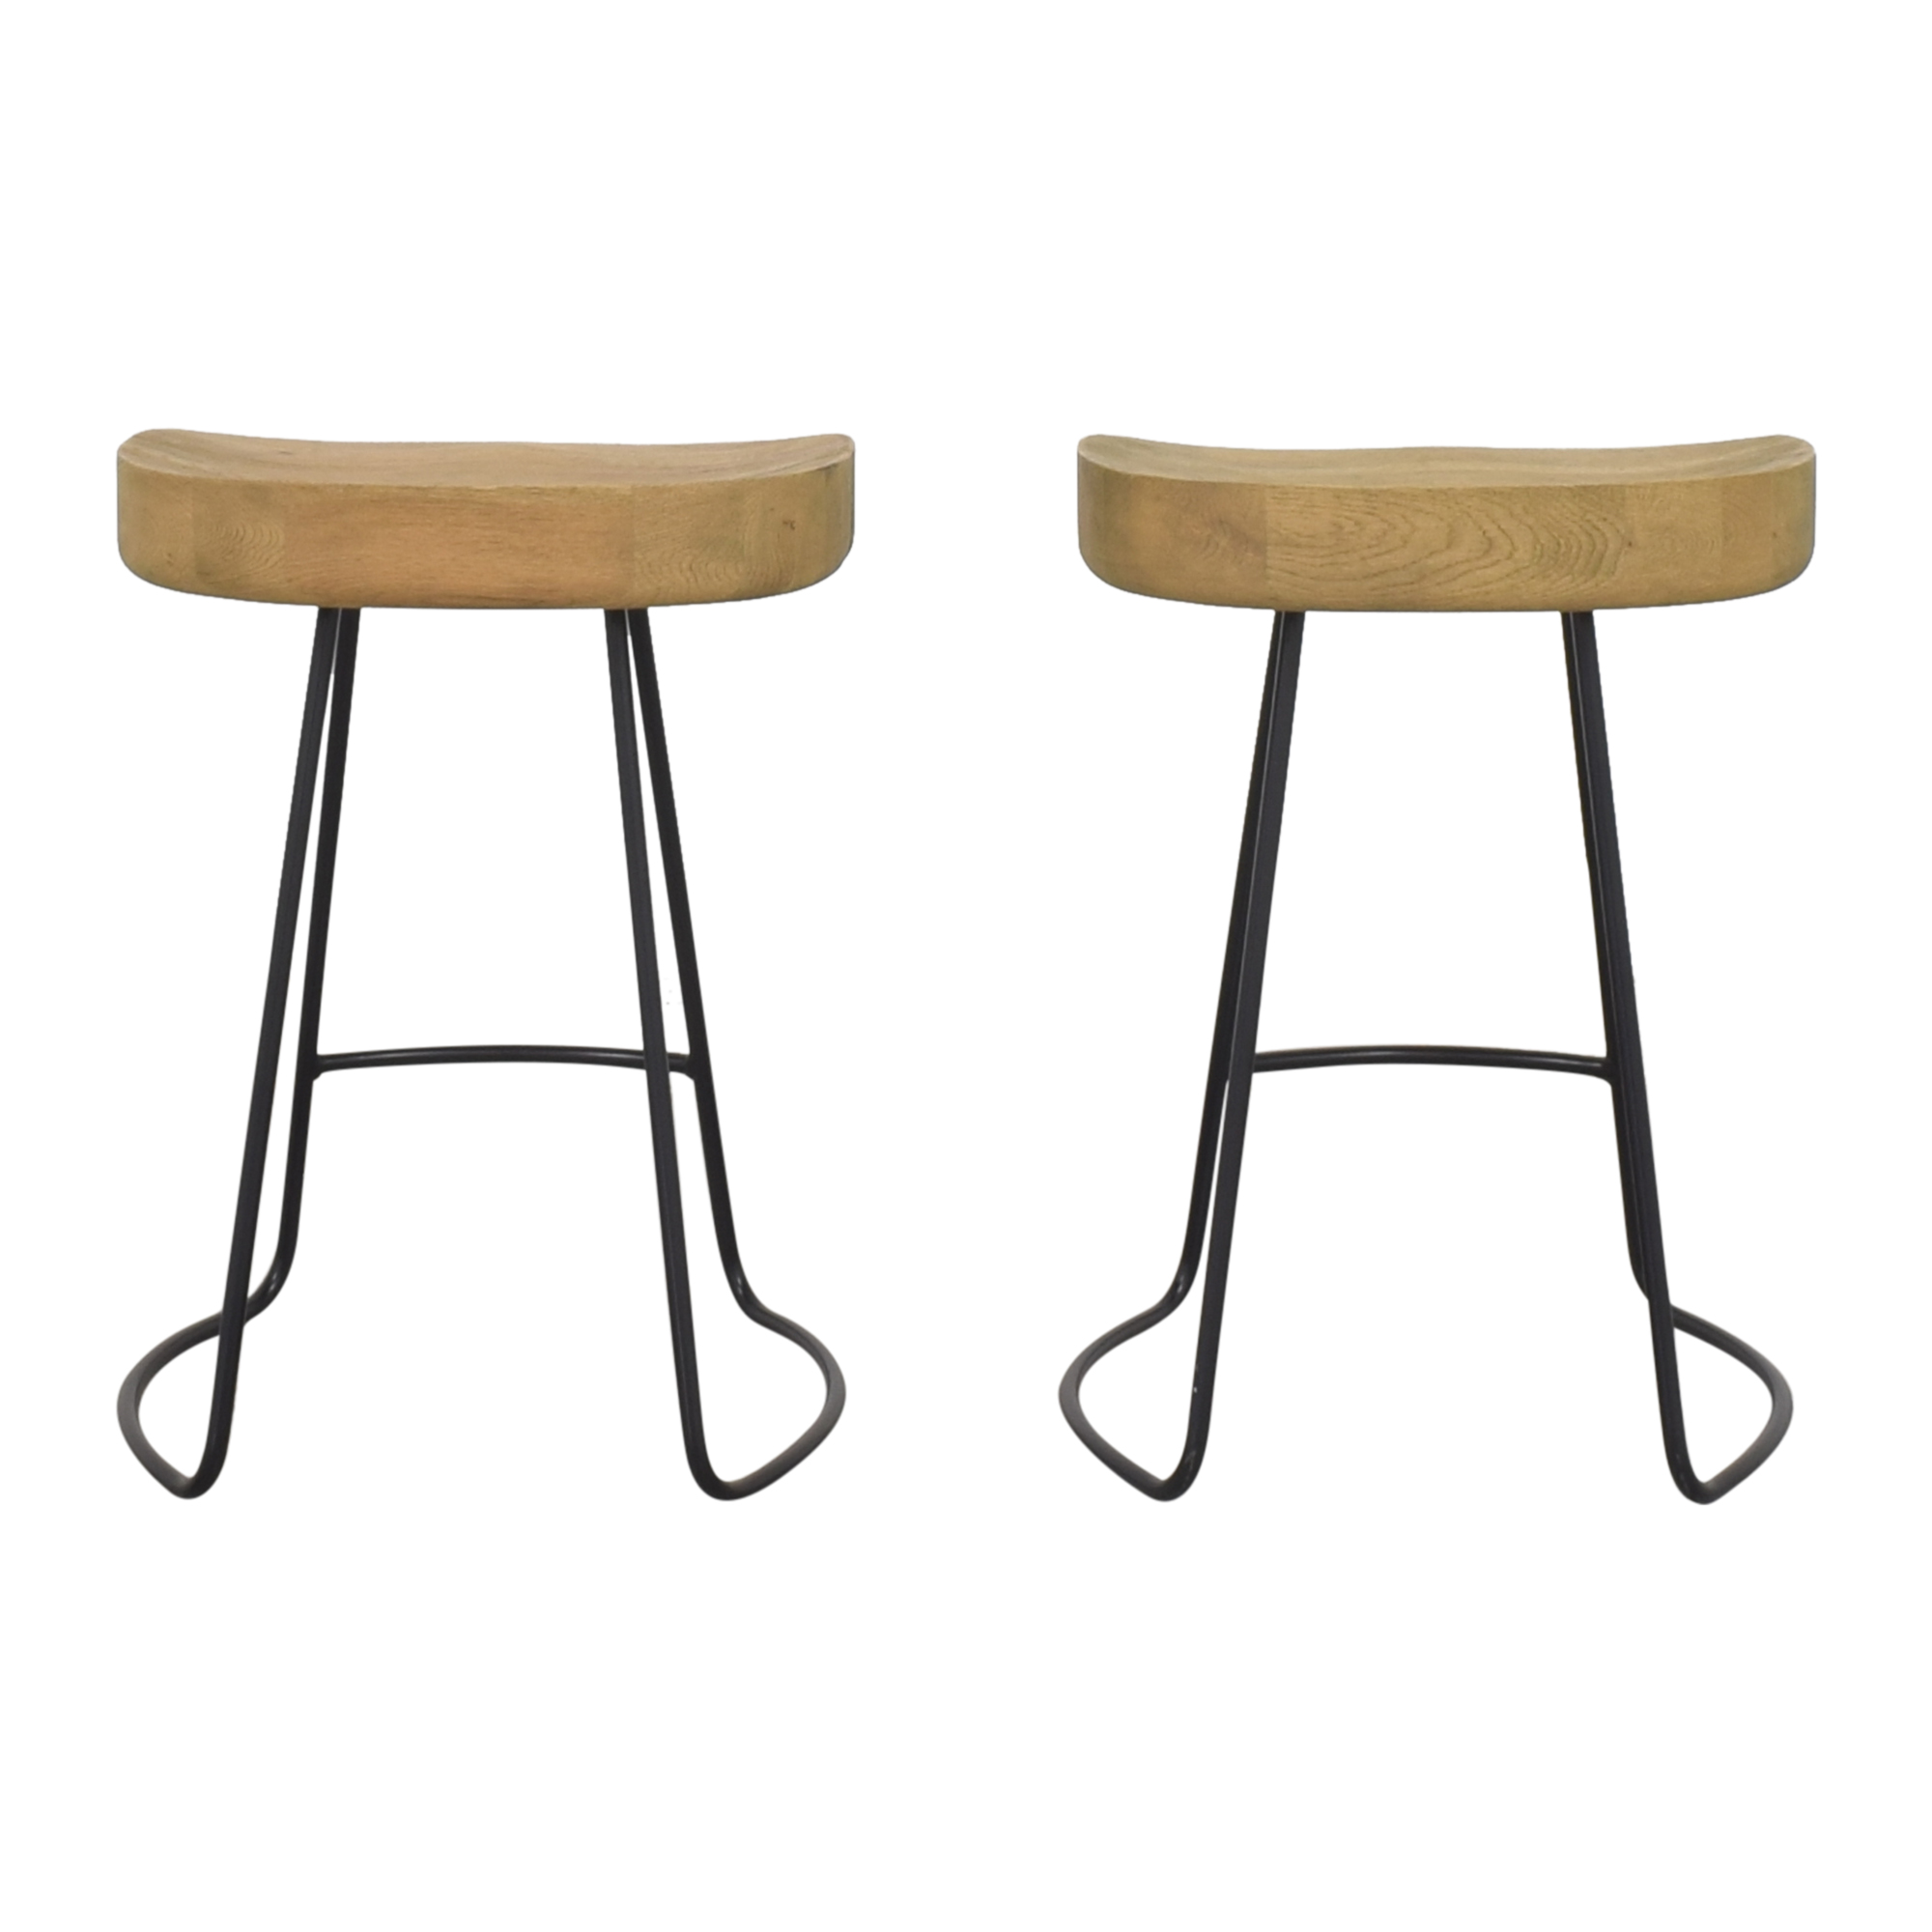 Restoration Hardware Restoration Hardware 1950s Tractor Seat Counter Stools on sale